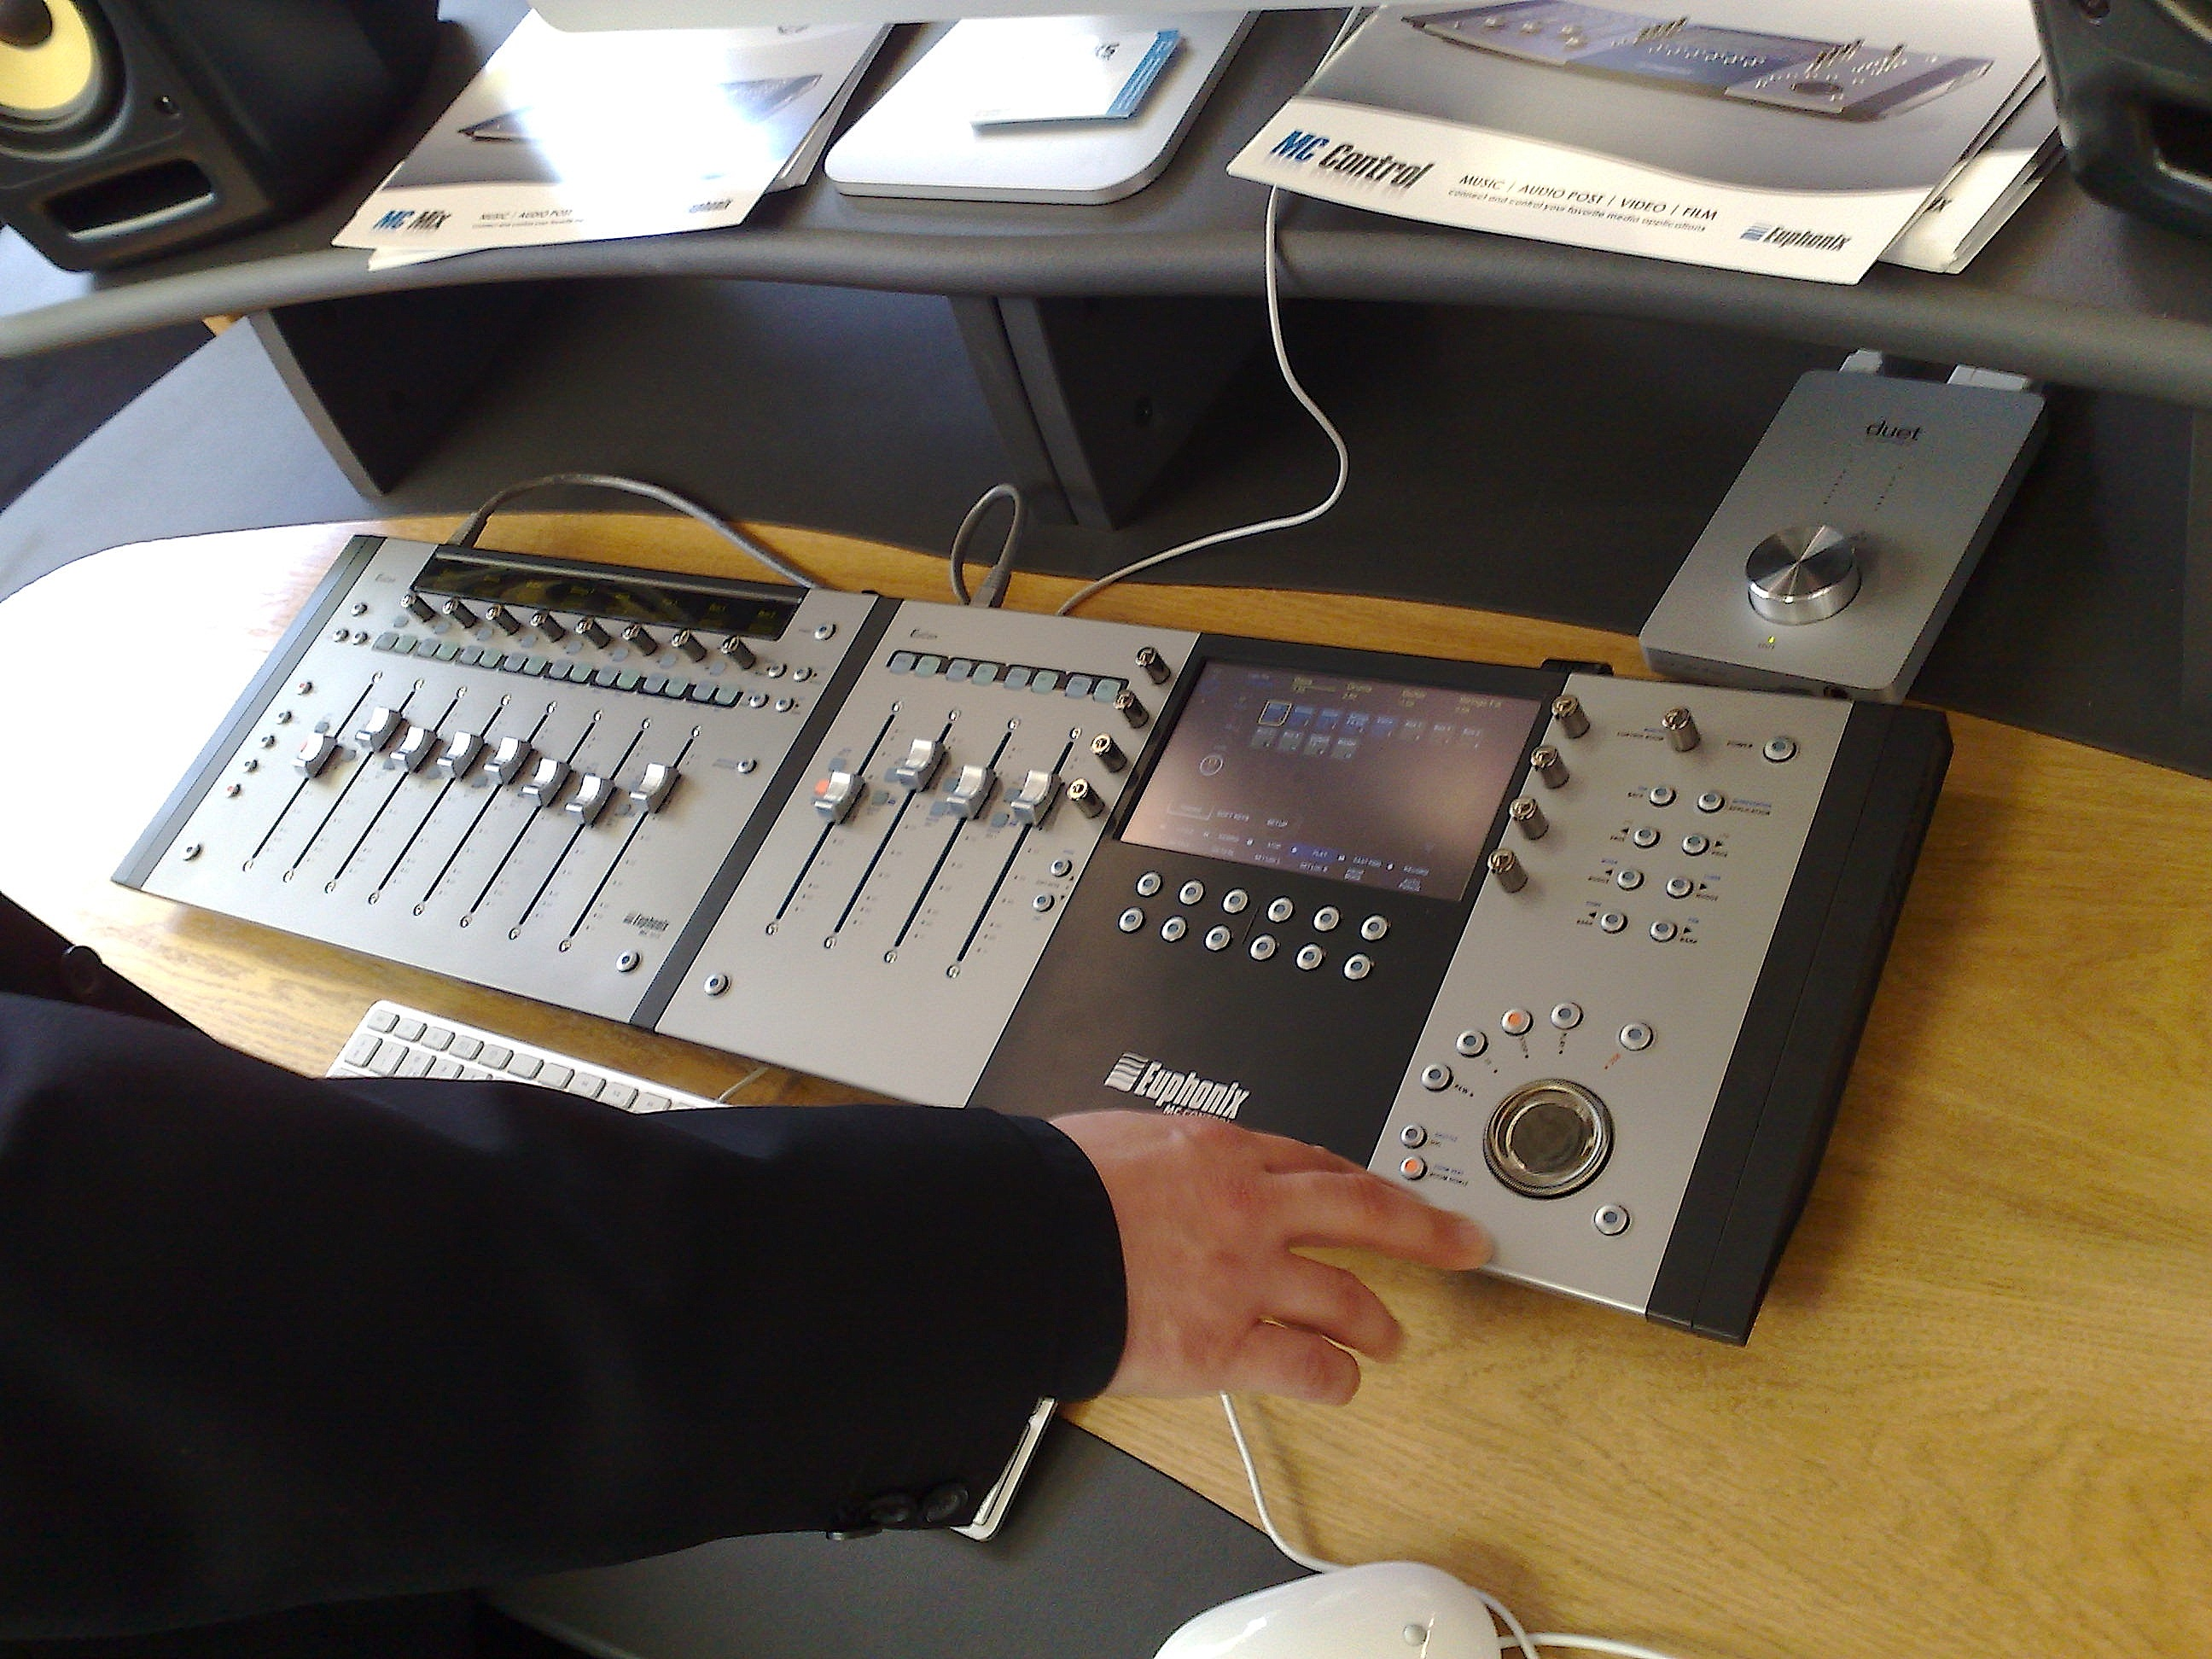 File:Euphonix MC and Apogee Duet (AES 124) jpg - Wikimedia Commons